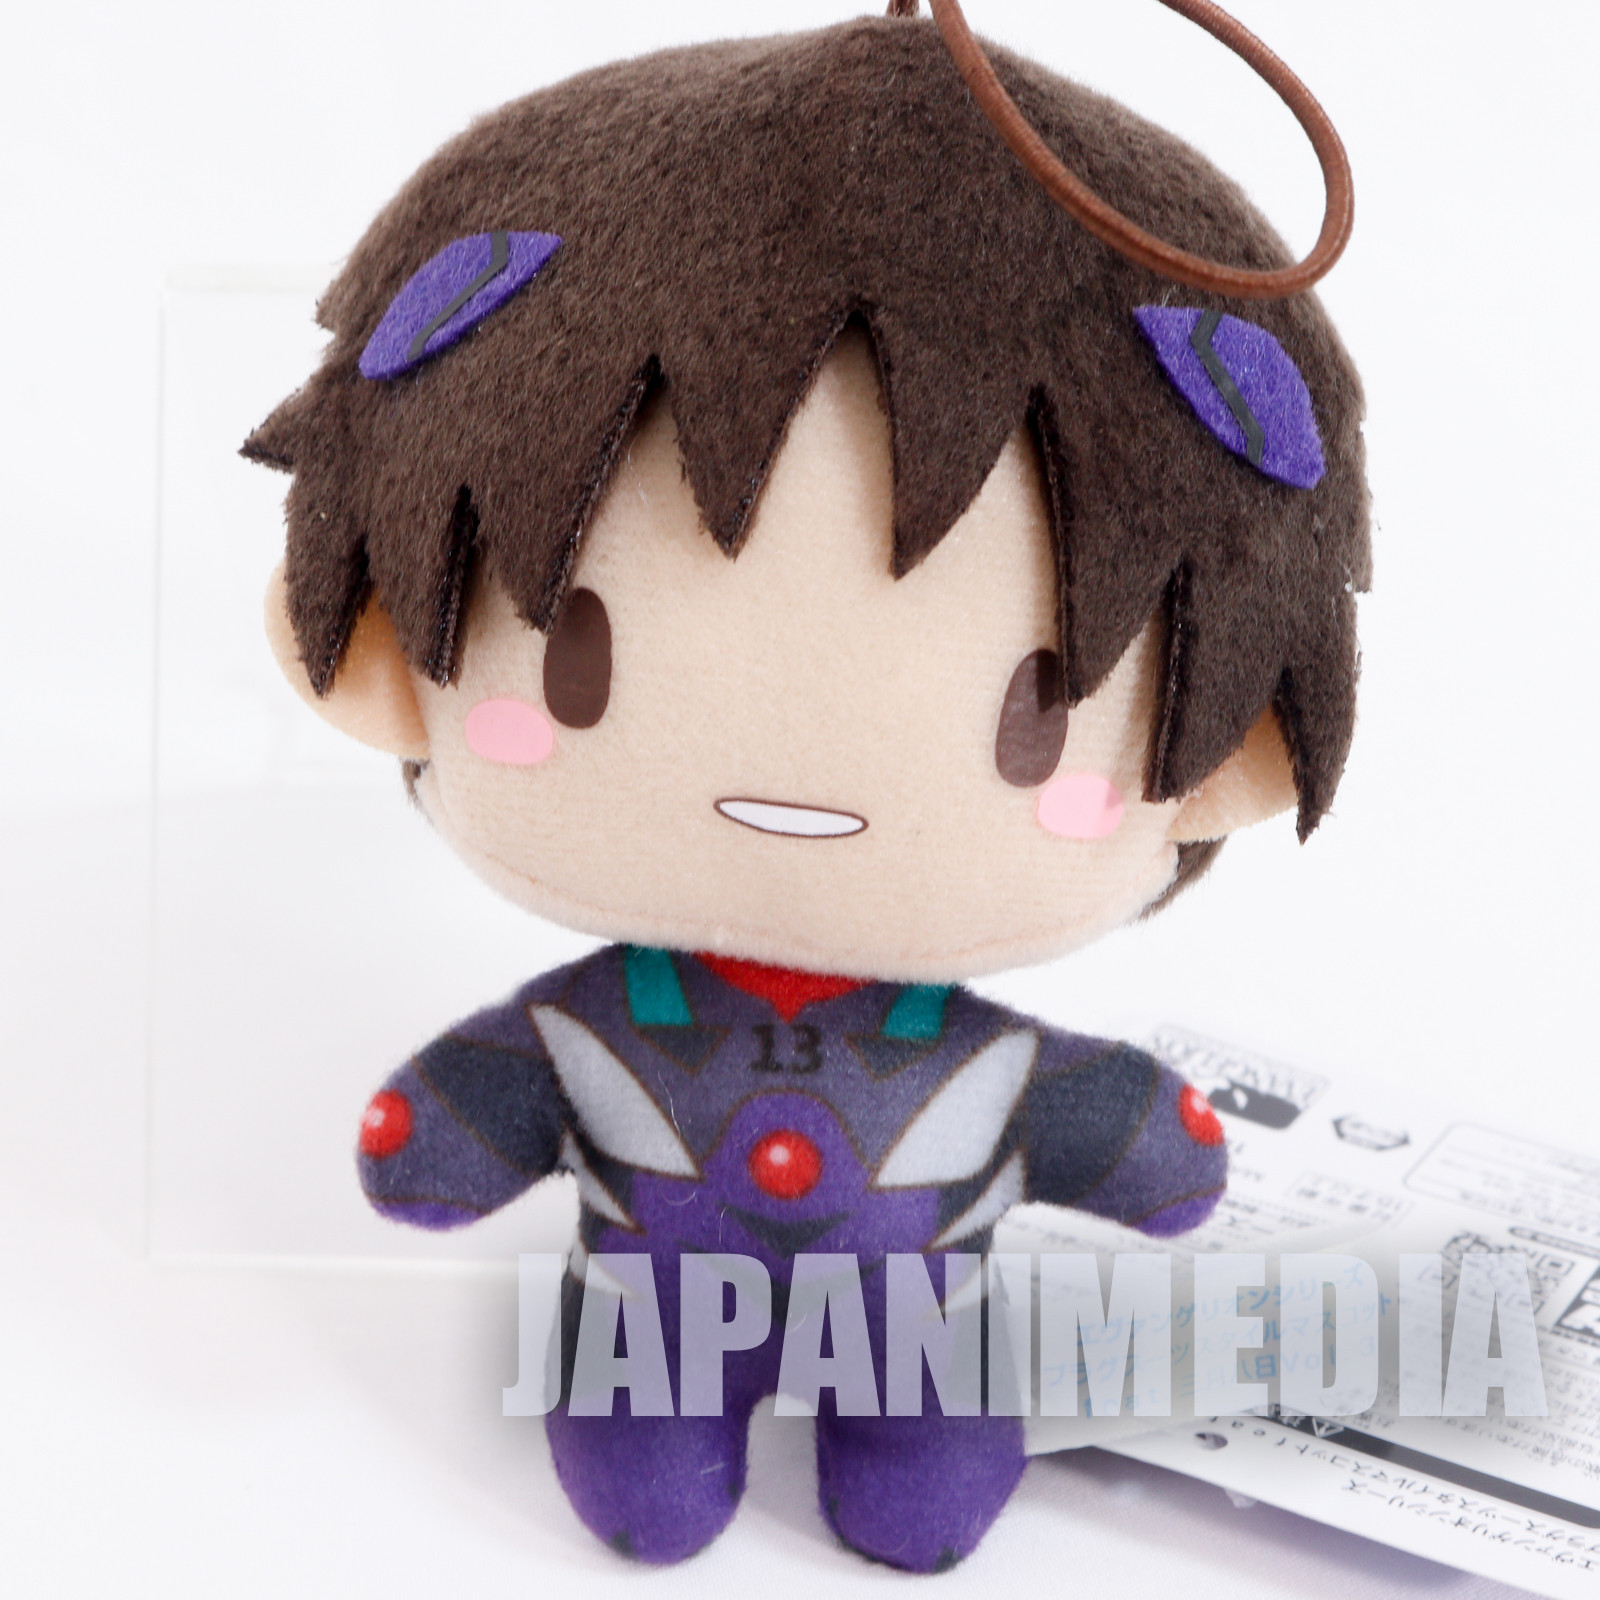 Evangelion Shinji Ikari Plugsuit Mini Plush Doll SEGA JAPAN ANIME MANGA